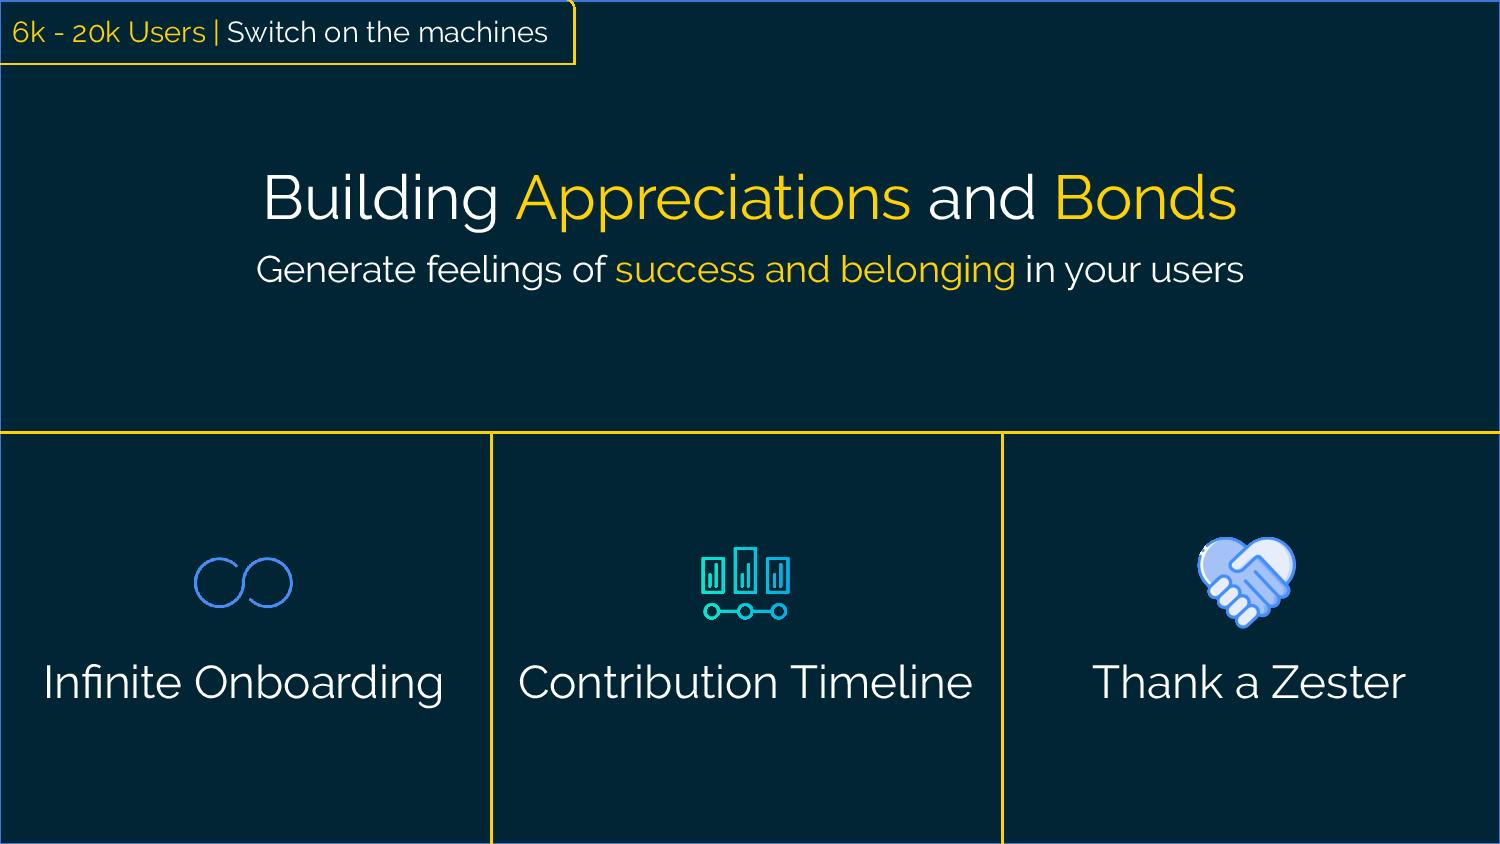 Building Appreciations and Bonds Generate feelings of success and belonging in your users Examples:  Infinite onboarding Contribution Timelines Thank a Zester